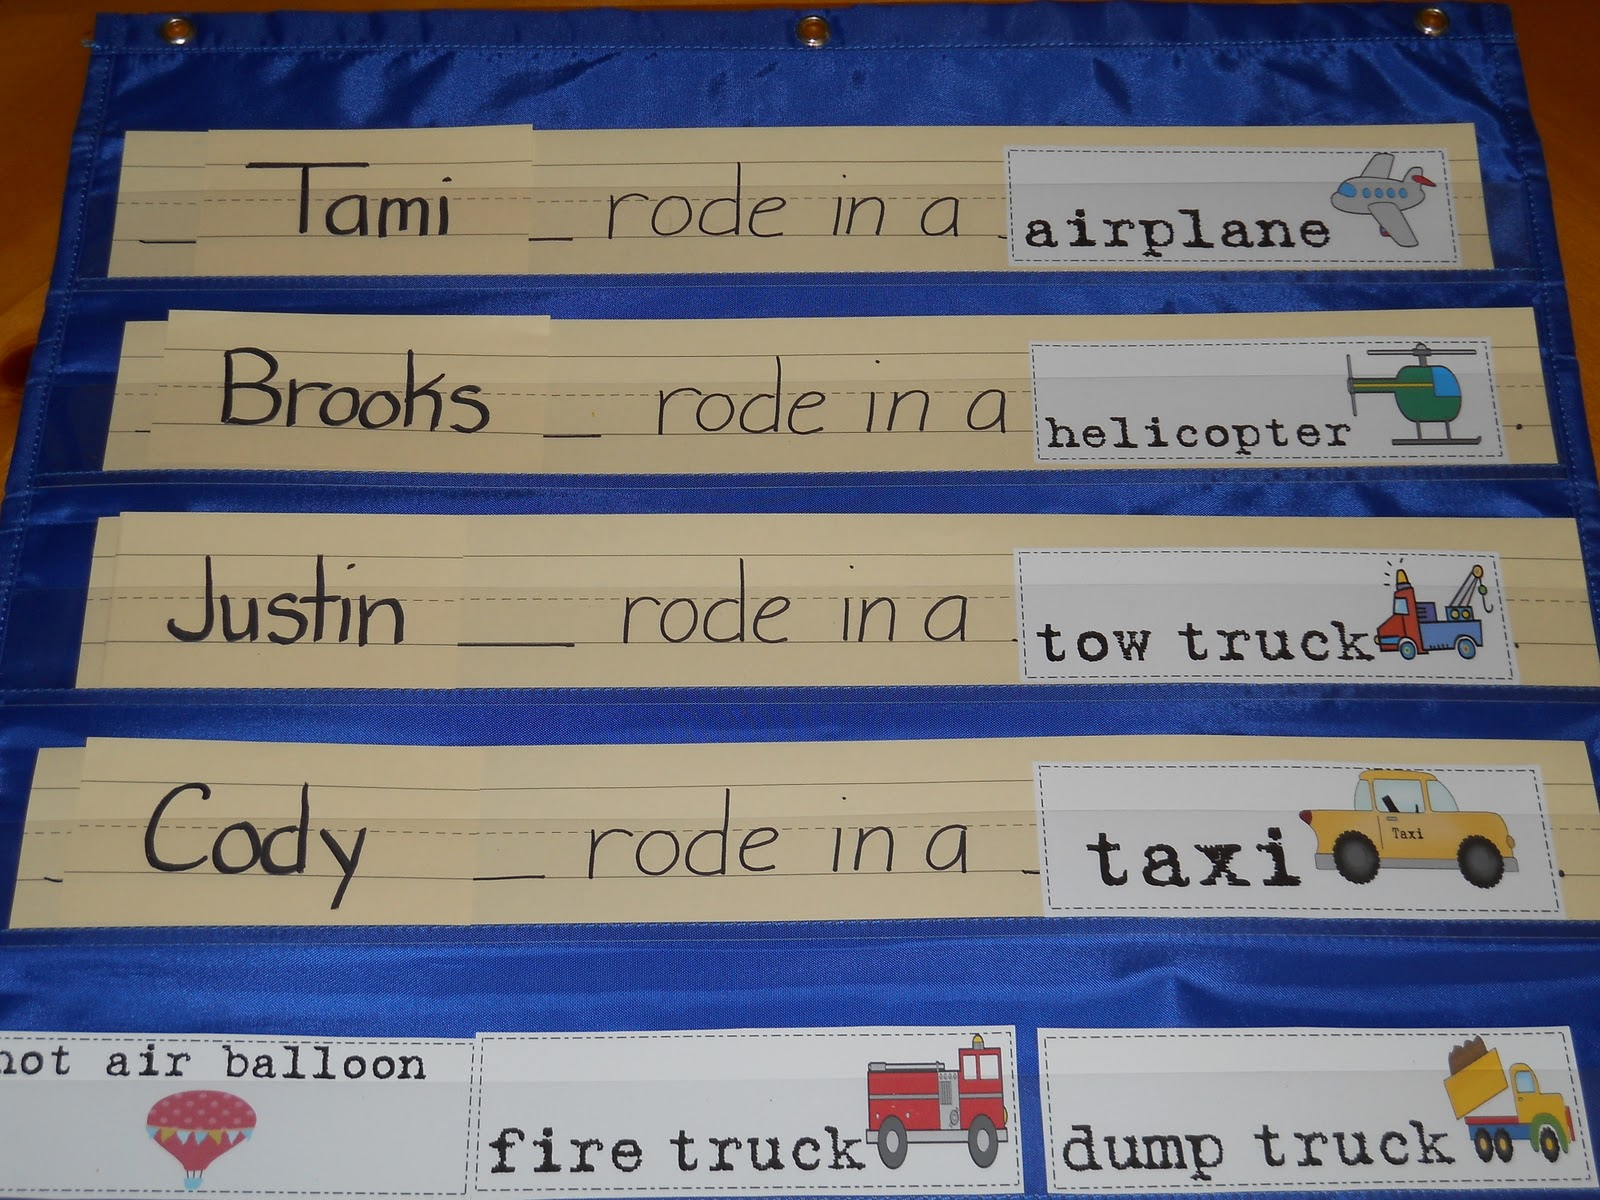 Learning And Teaching With Preschoolers: Transportation